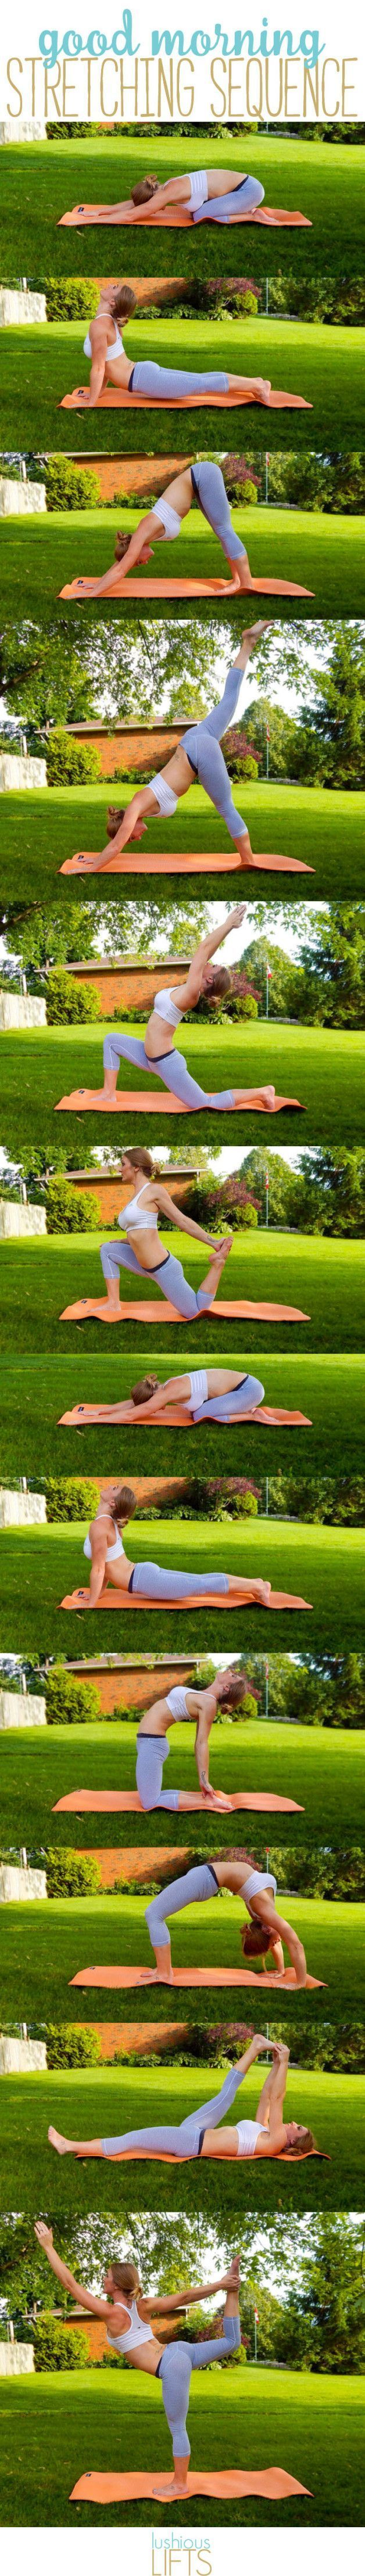 Good morning yoga stretching sequence. Try these stretches to help wake you up and energize you for the day!